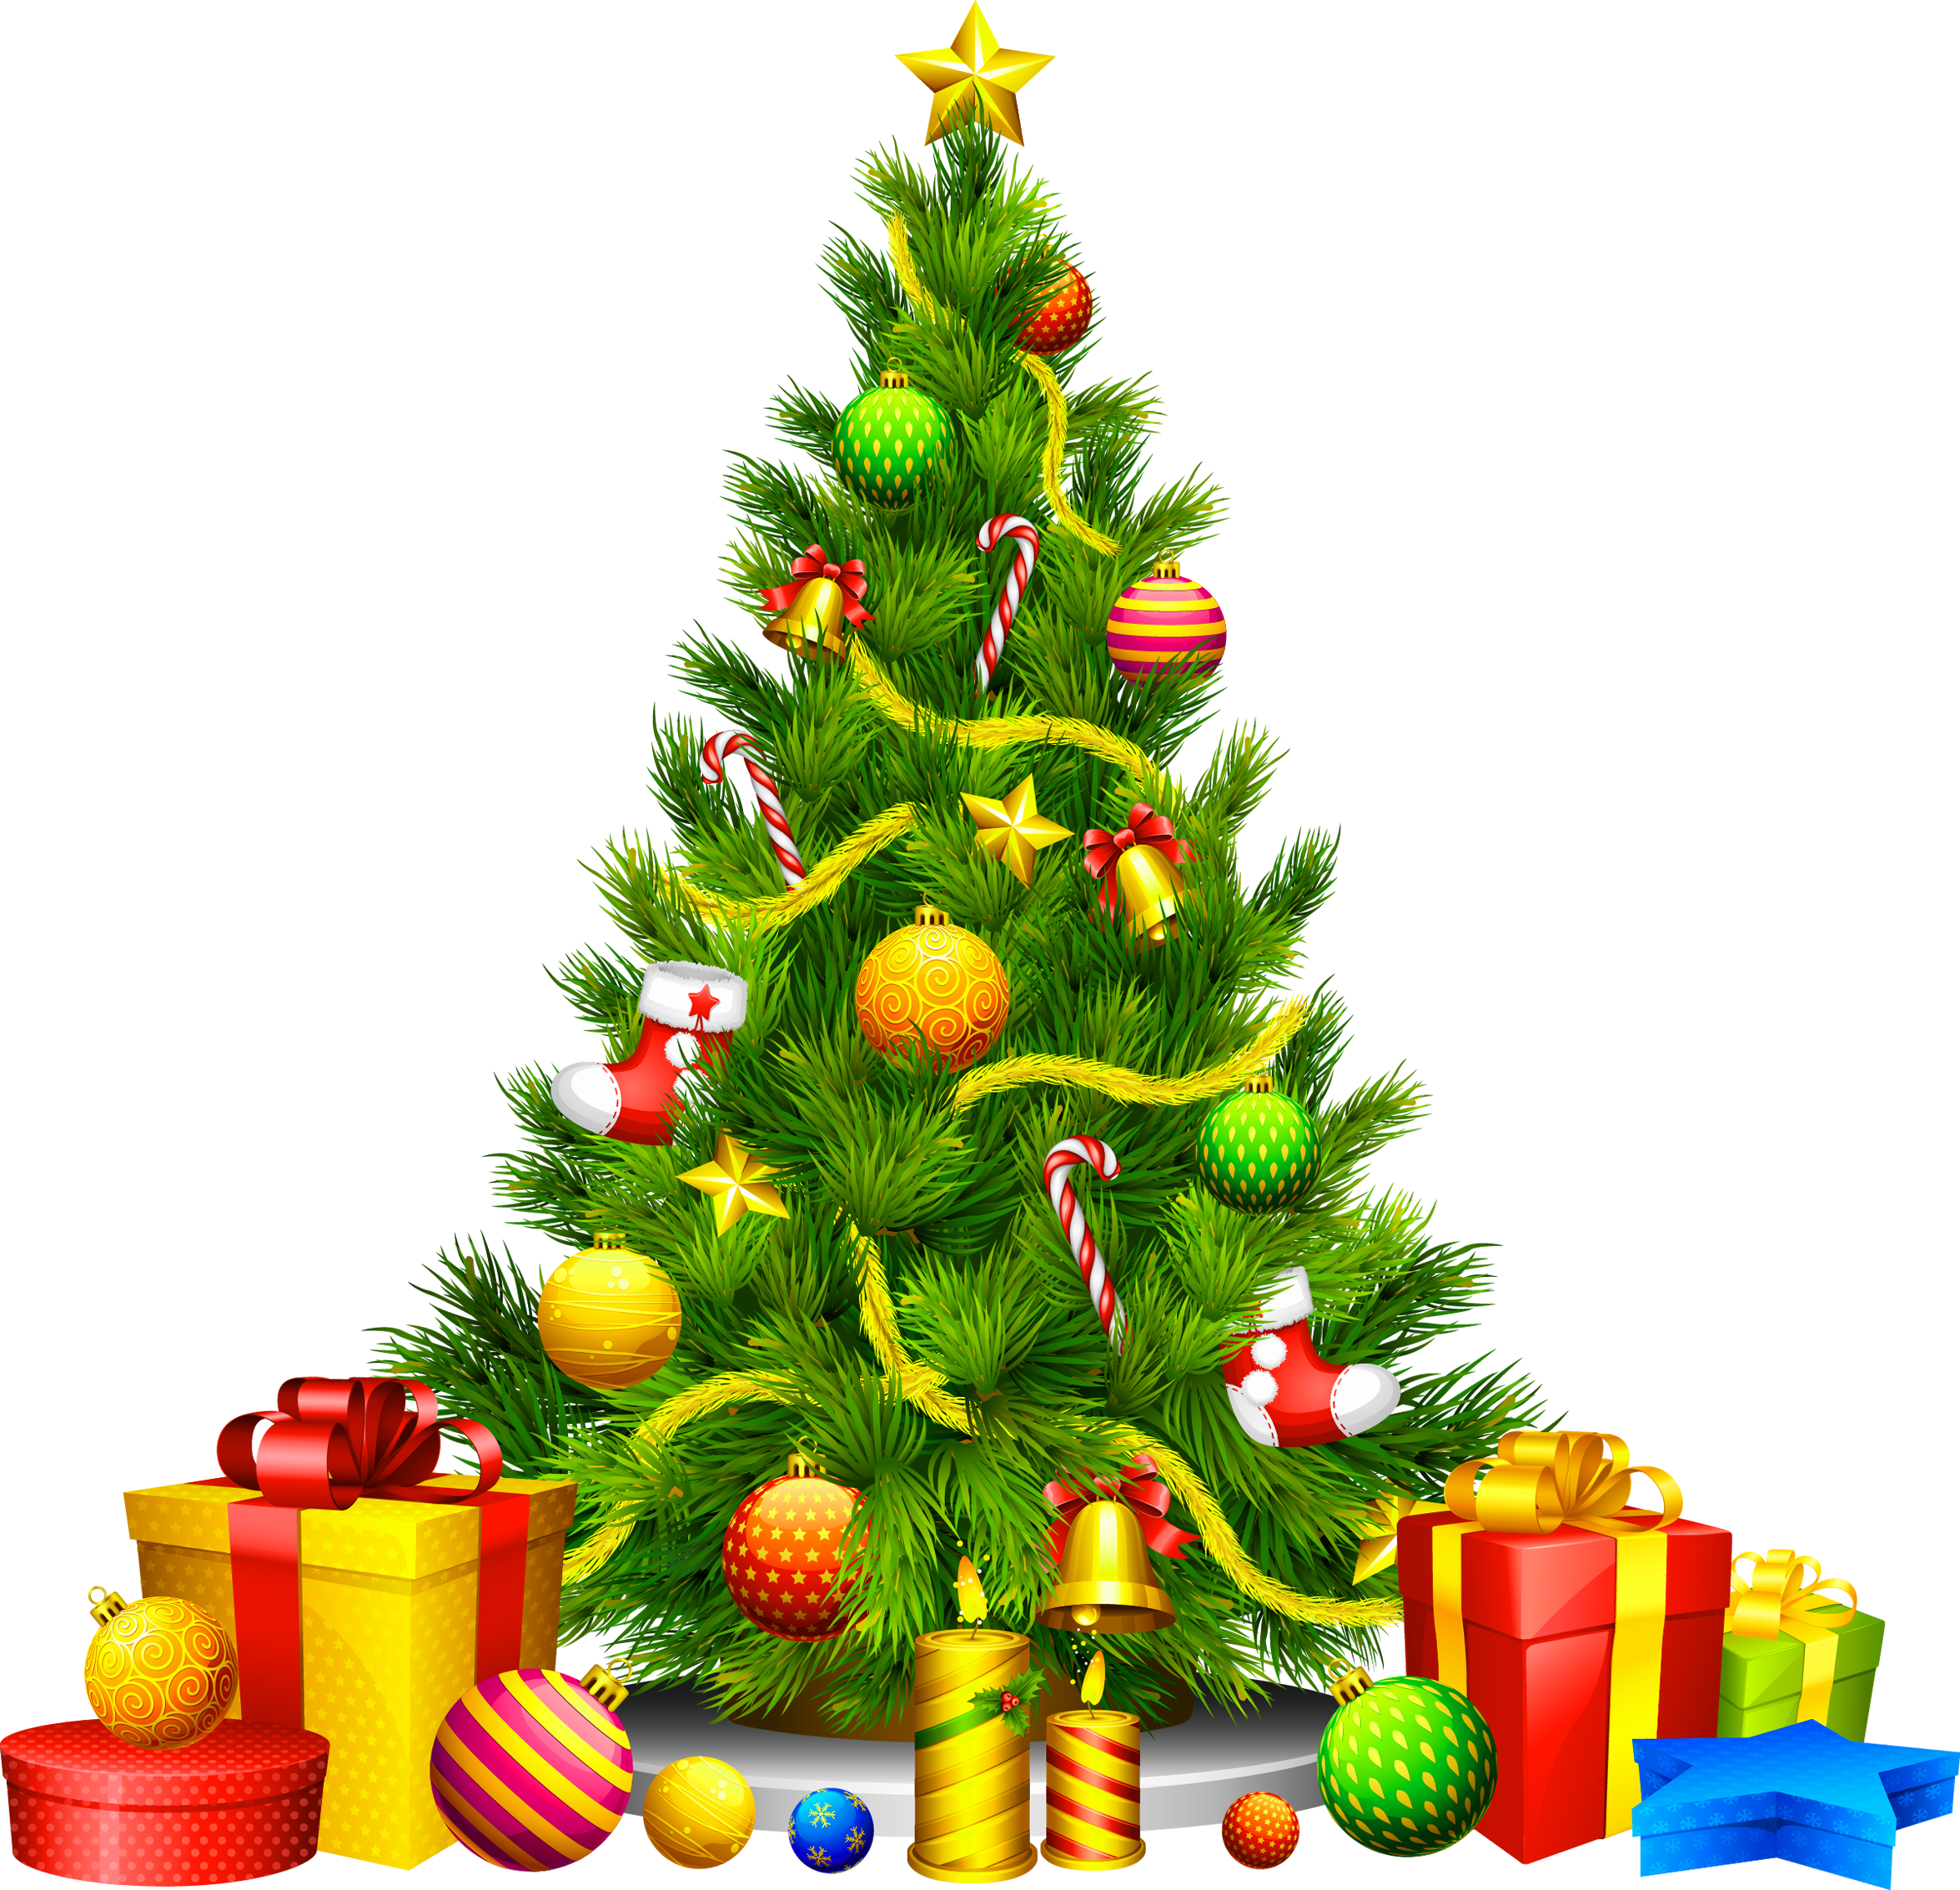 Christmas tree with presents png. Large transparent clipart gallery